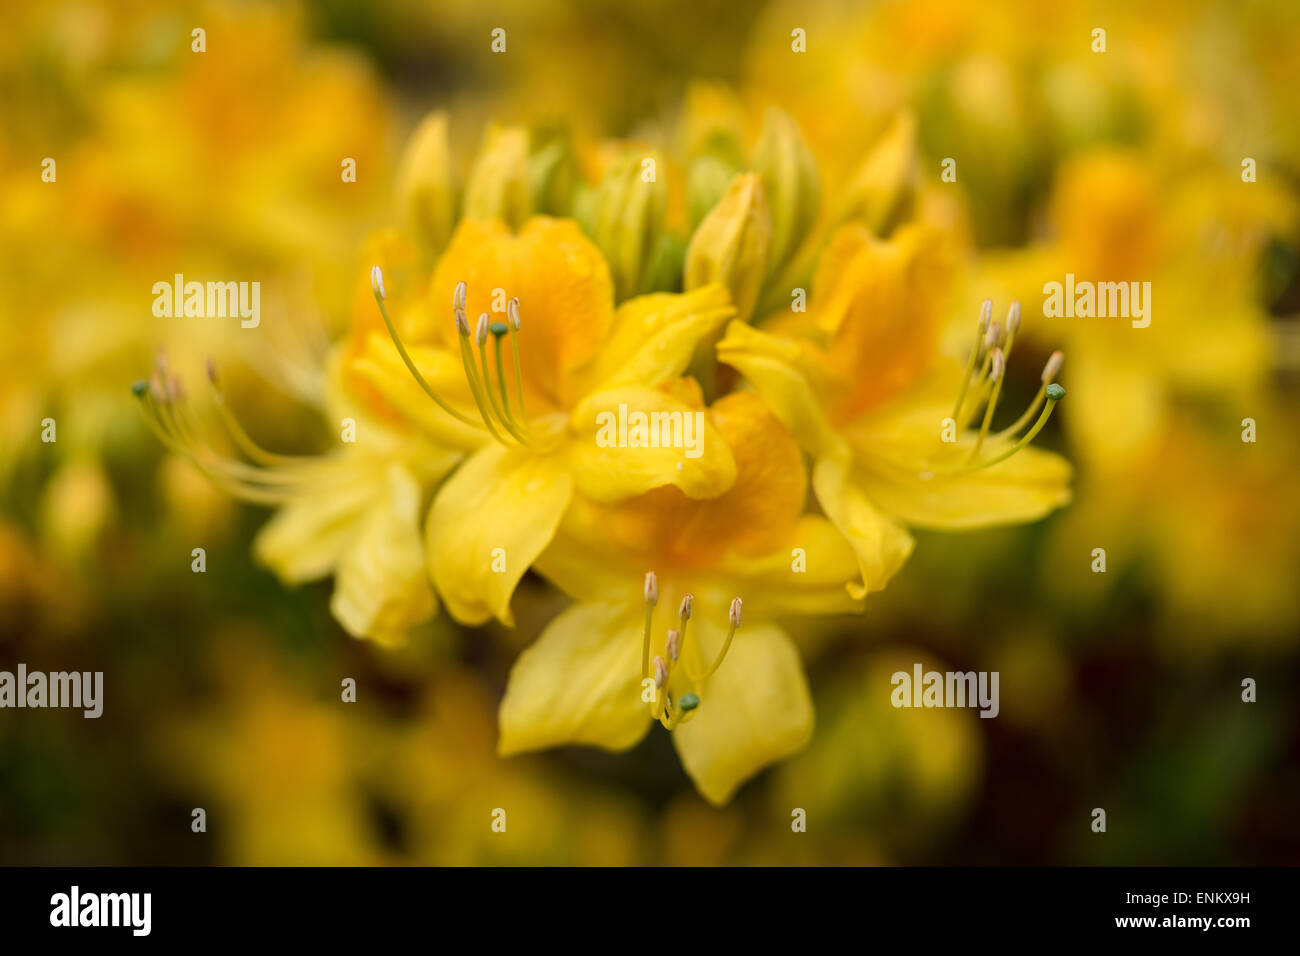 Yellow azalea Rhododendron luteum flowers close up fragrant - Stock Image